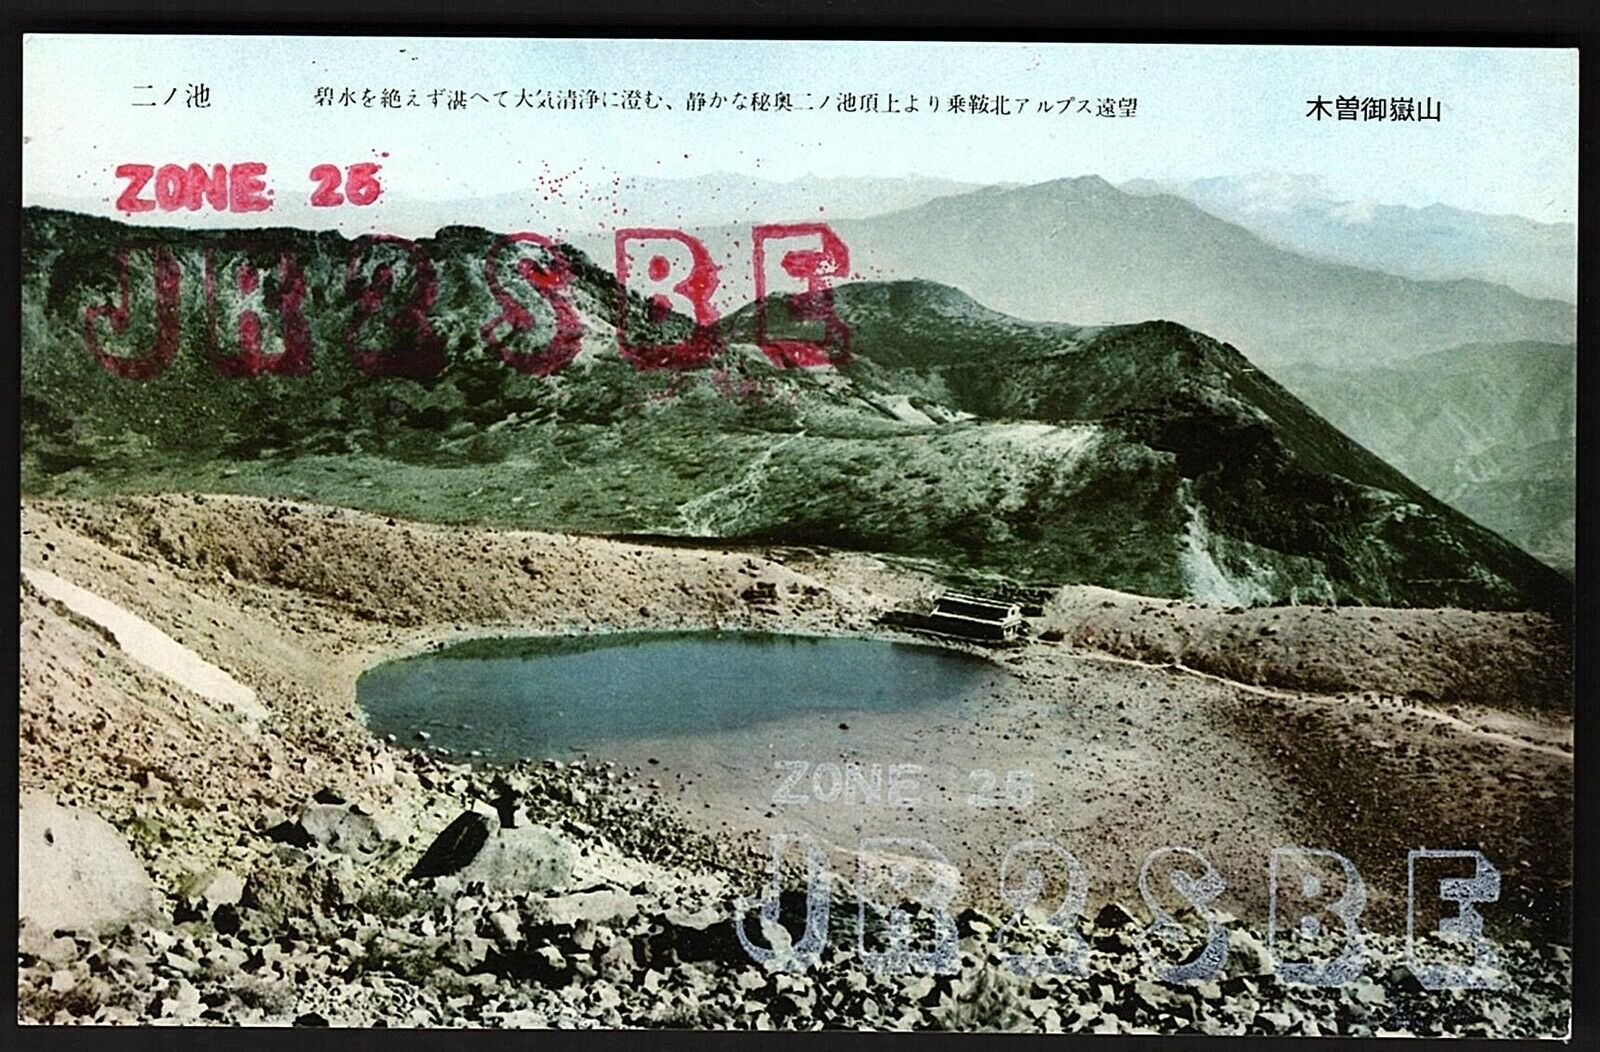 QSL QSO RADIO CARD JR2SBE,Sinichi Kawada,1983, Japan (Q2543)